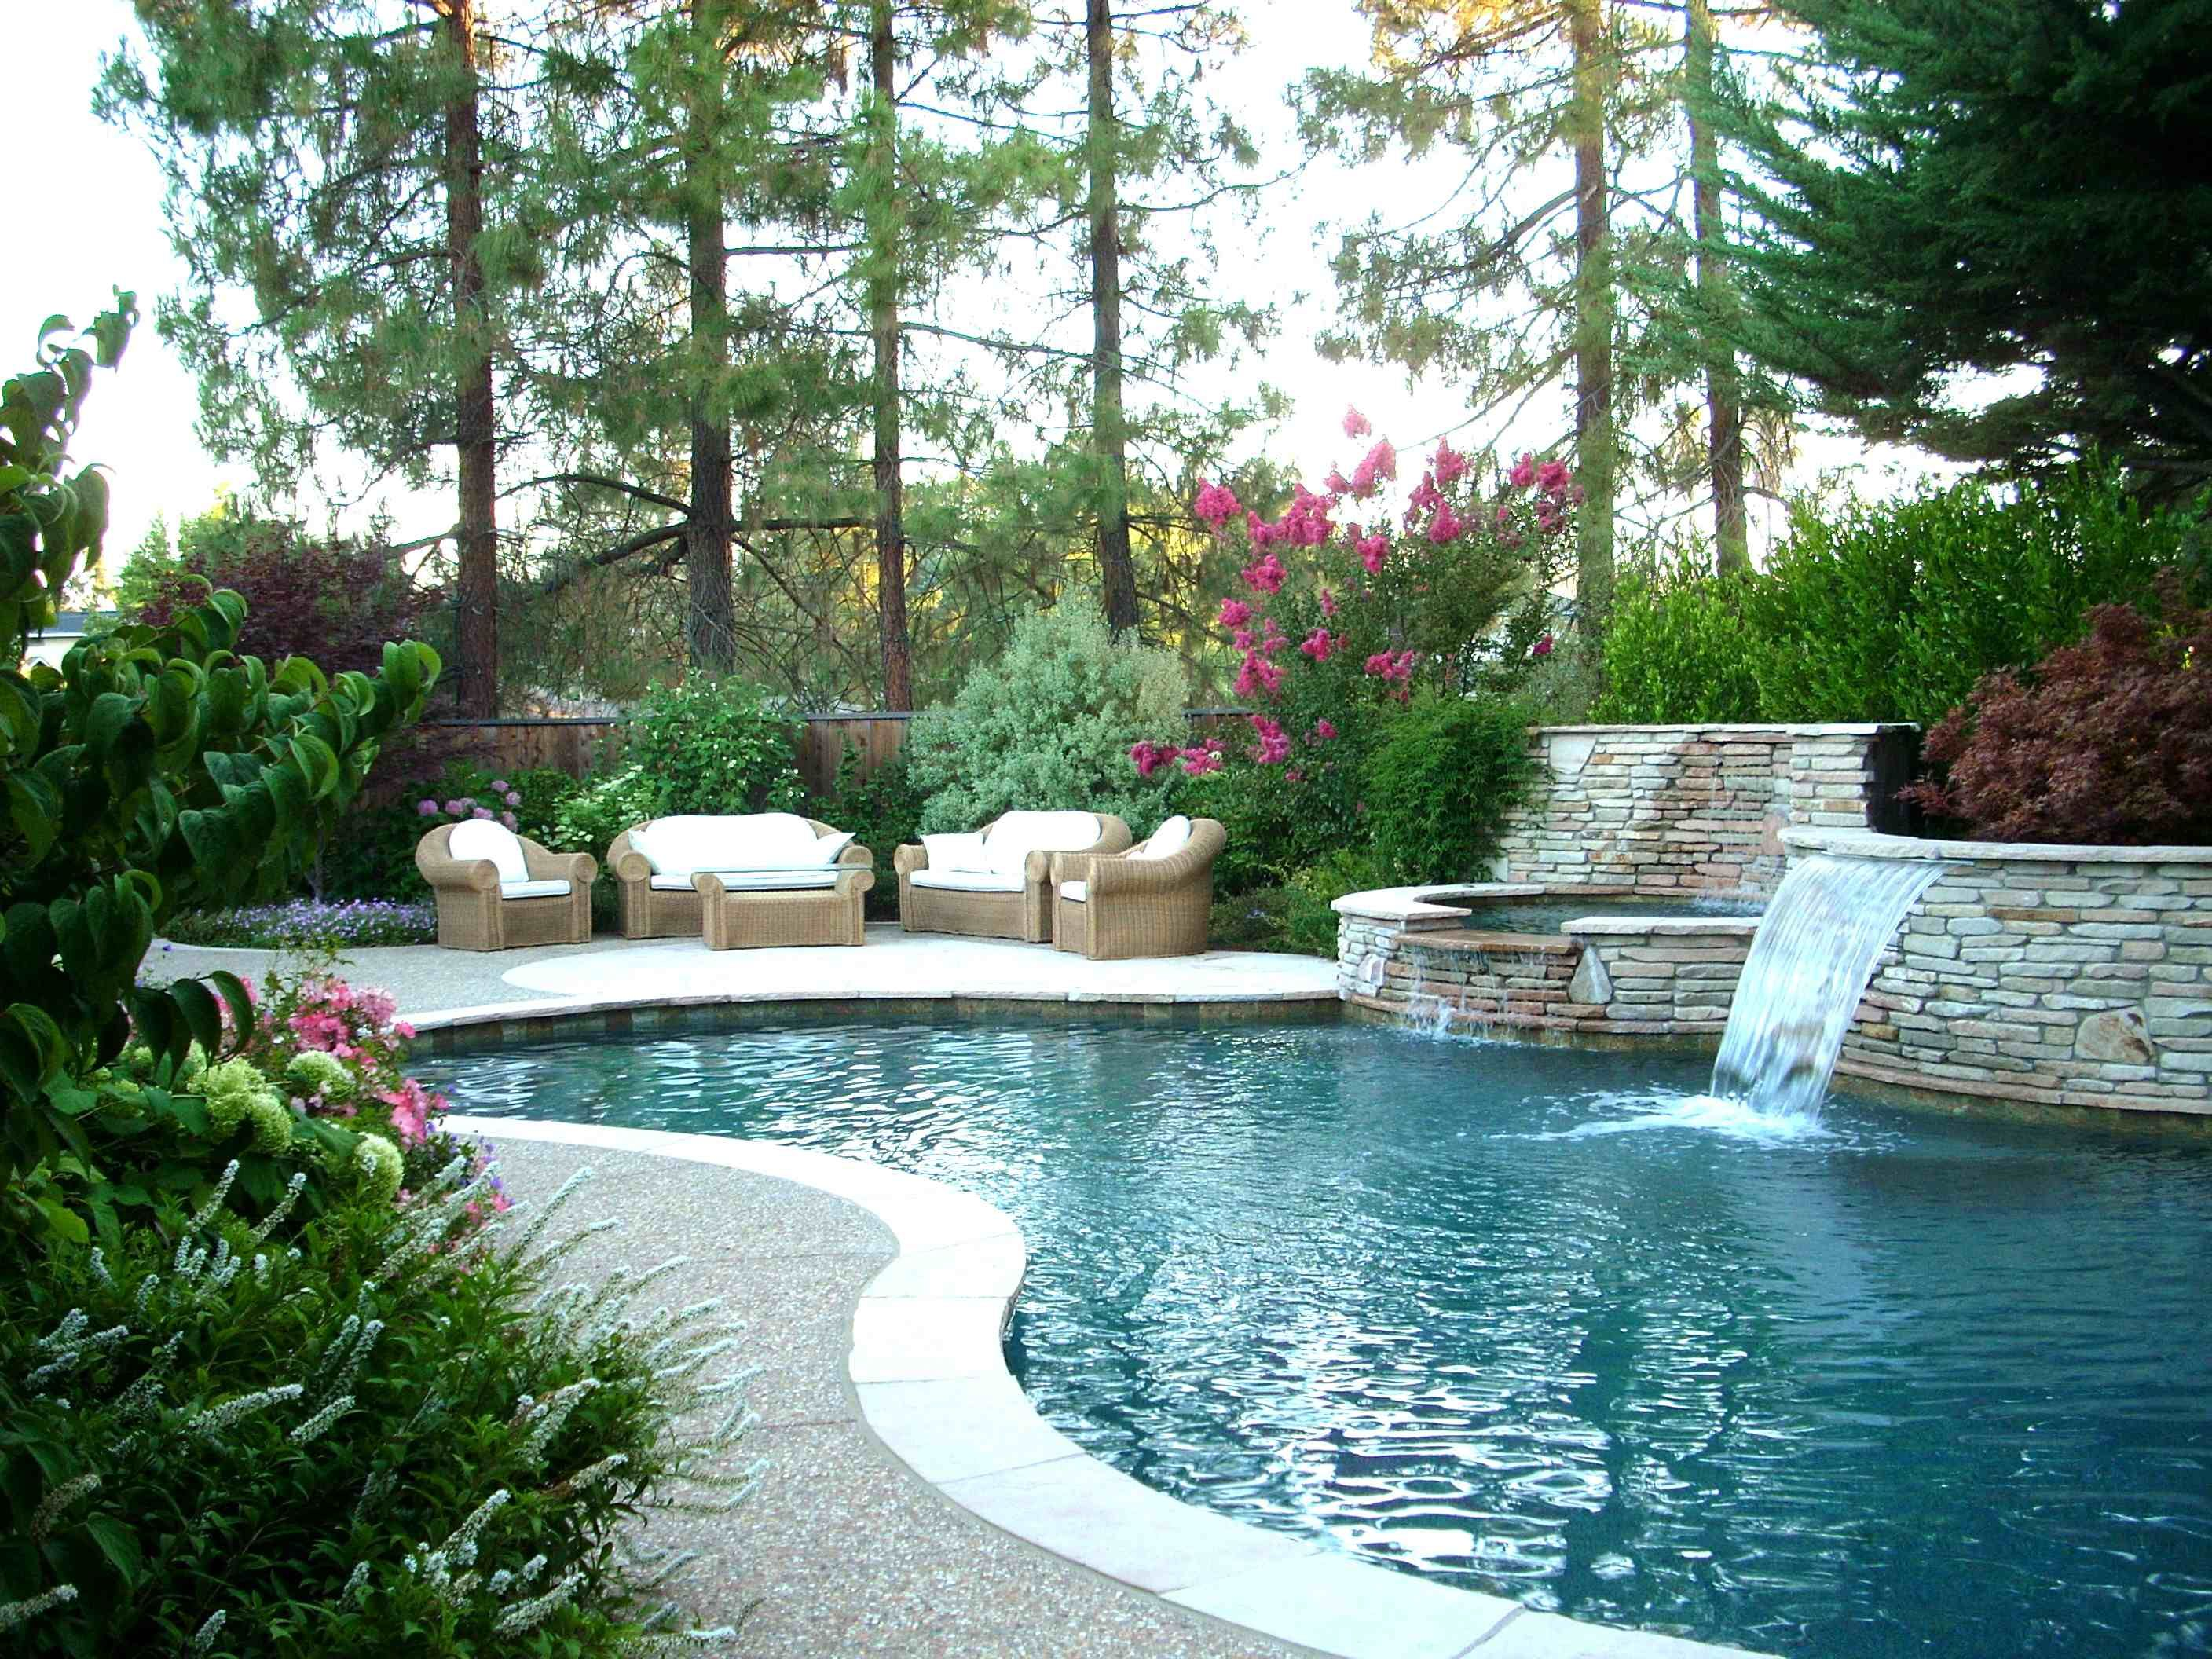 Landscaped pool pictures landscape design ideas for Landscape garden design ideas